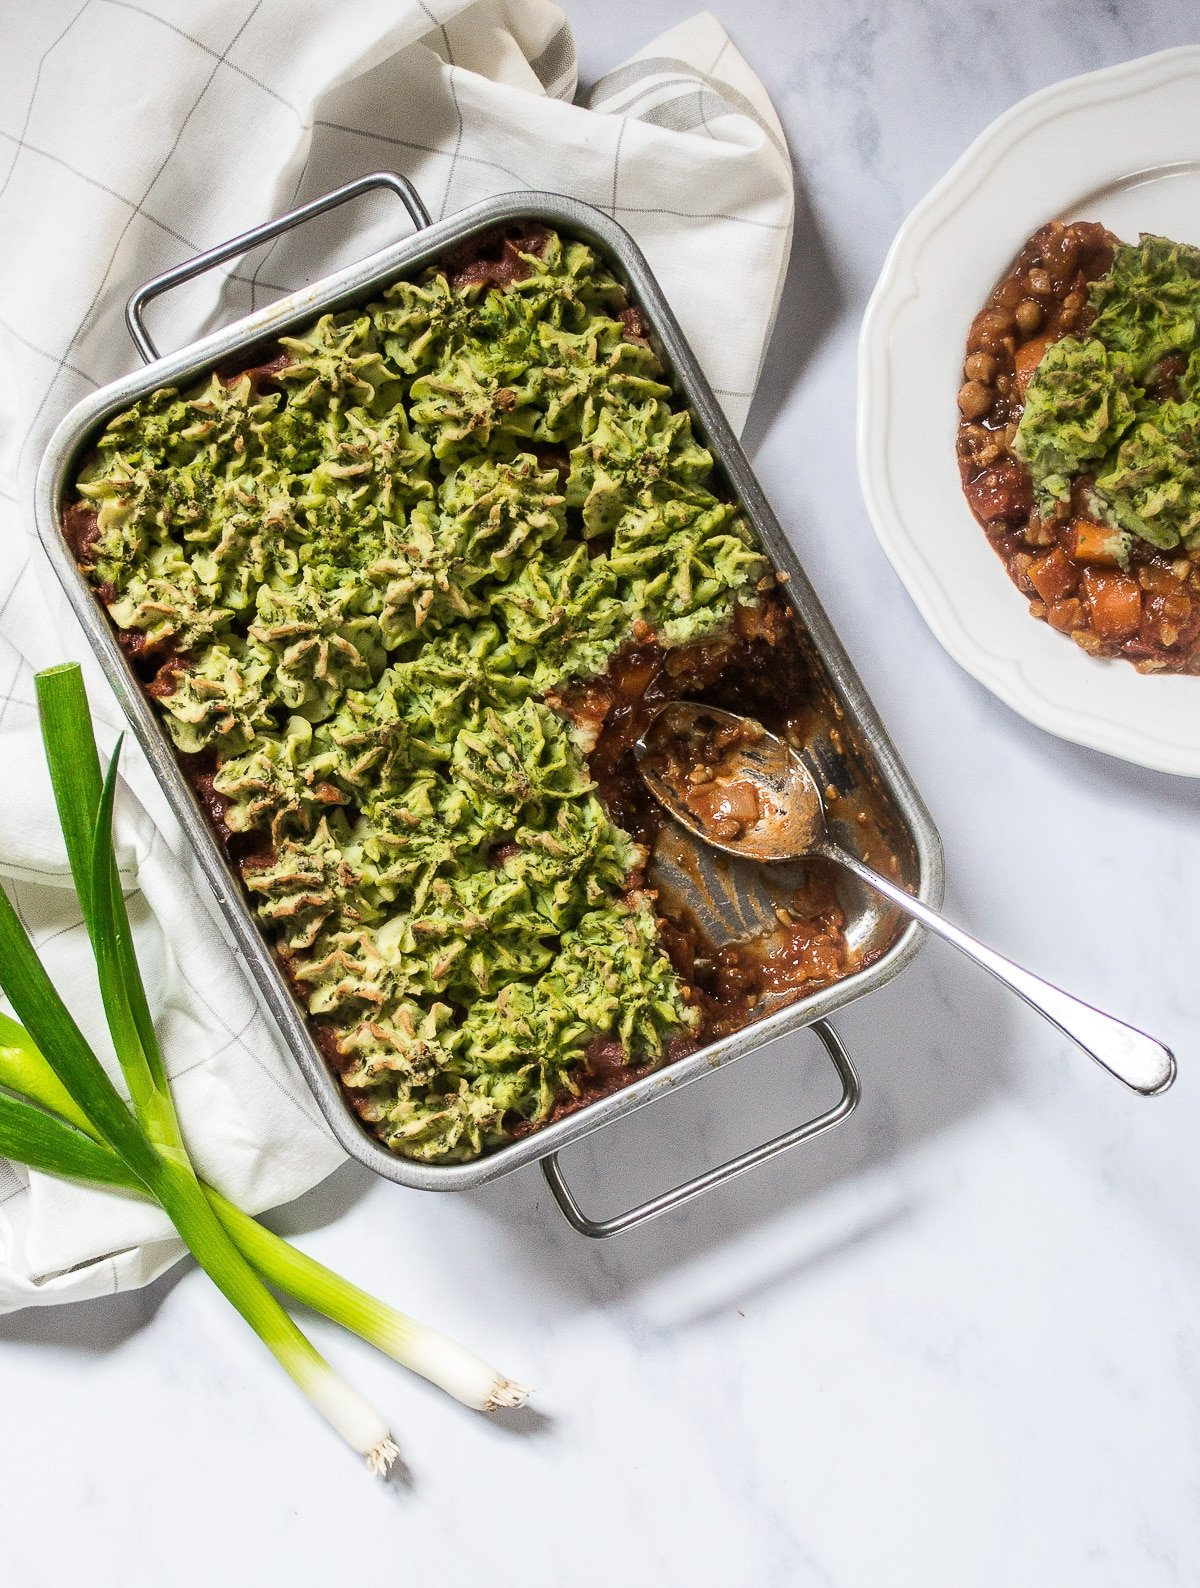 Vegan Cottage Pie with Colcannon Mash from The Veg Space